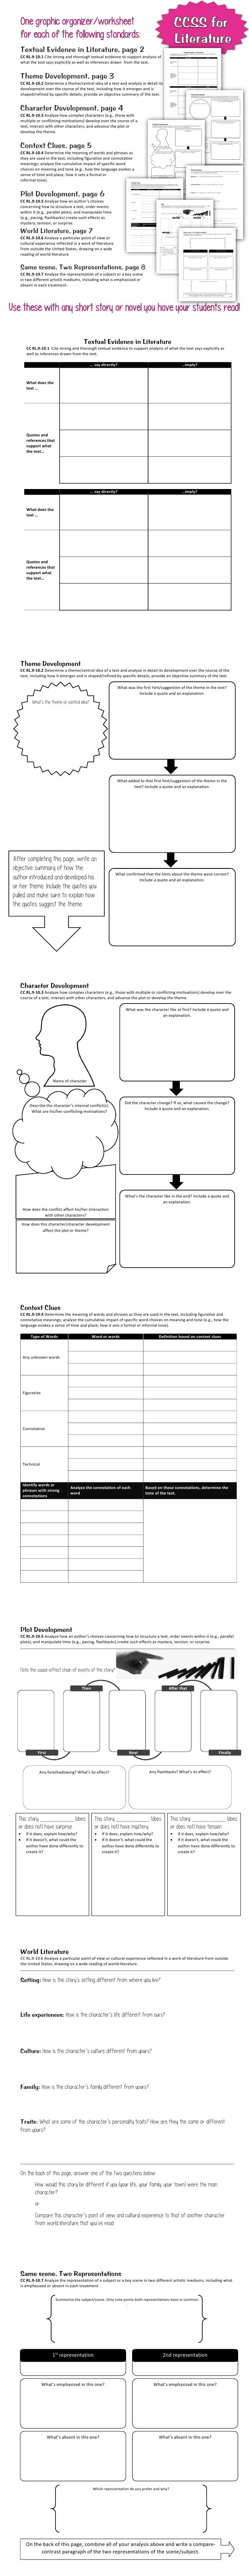 hight resolution of 14 Best Graphic Organizer Worksheets images on Best Worksheets Collection